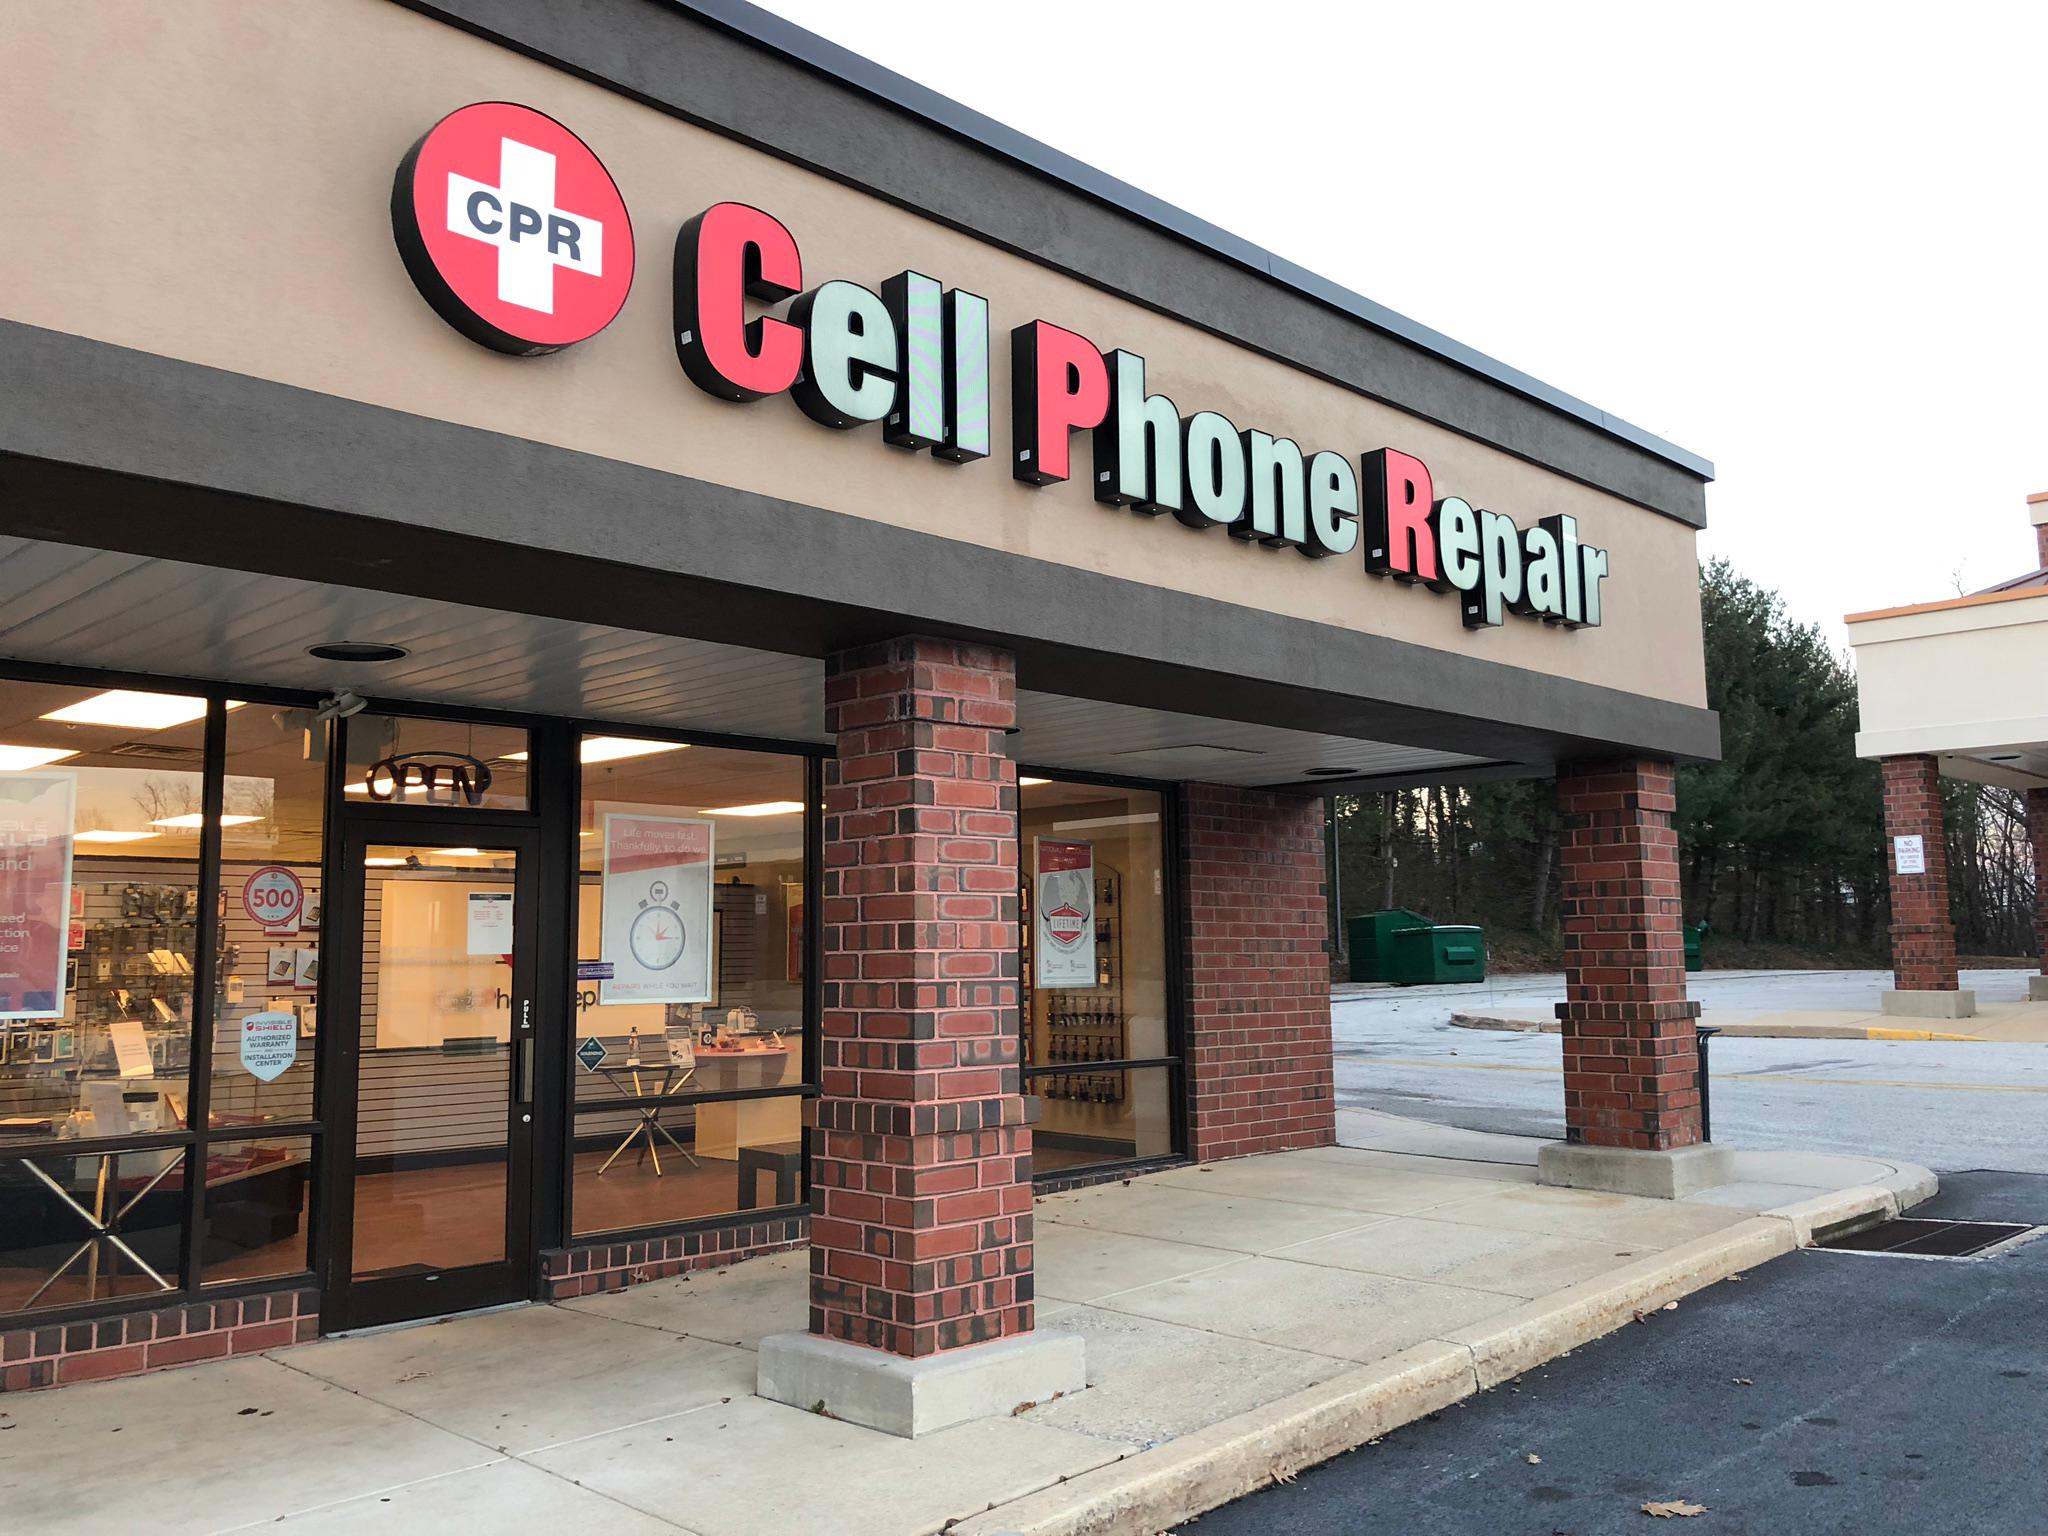 CPR Cell Phone Repair King of Prussia